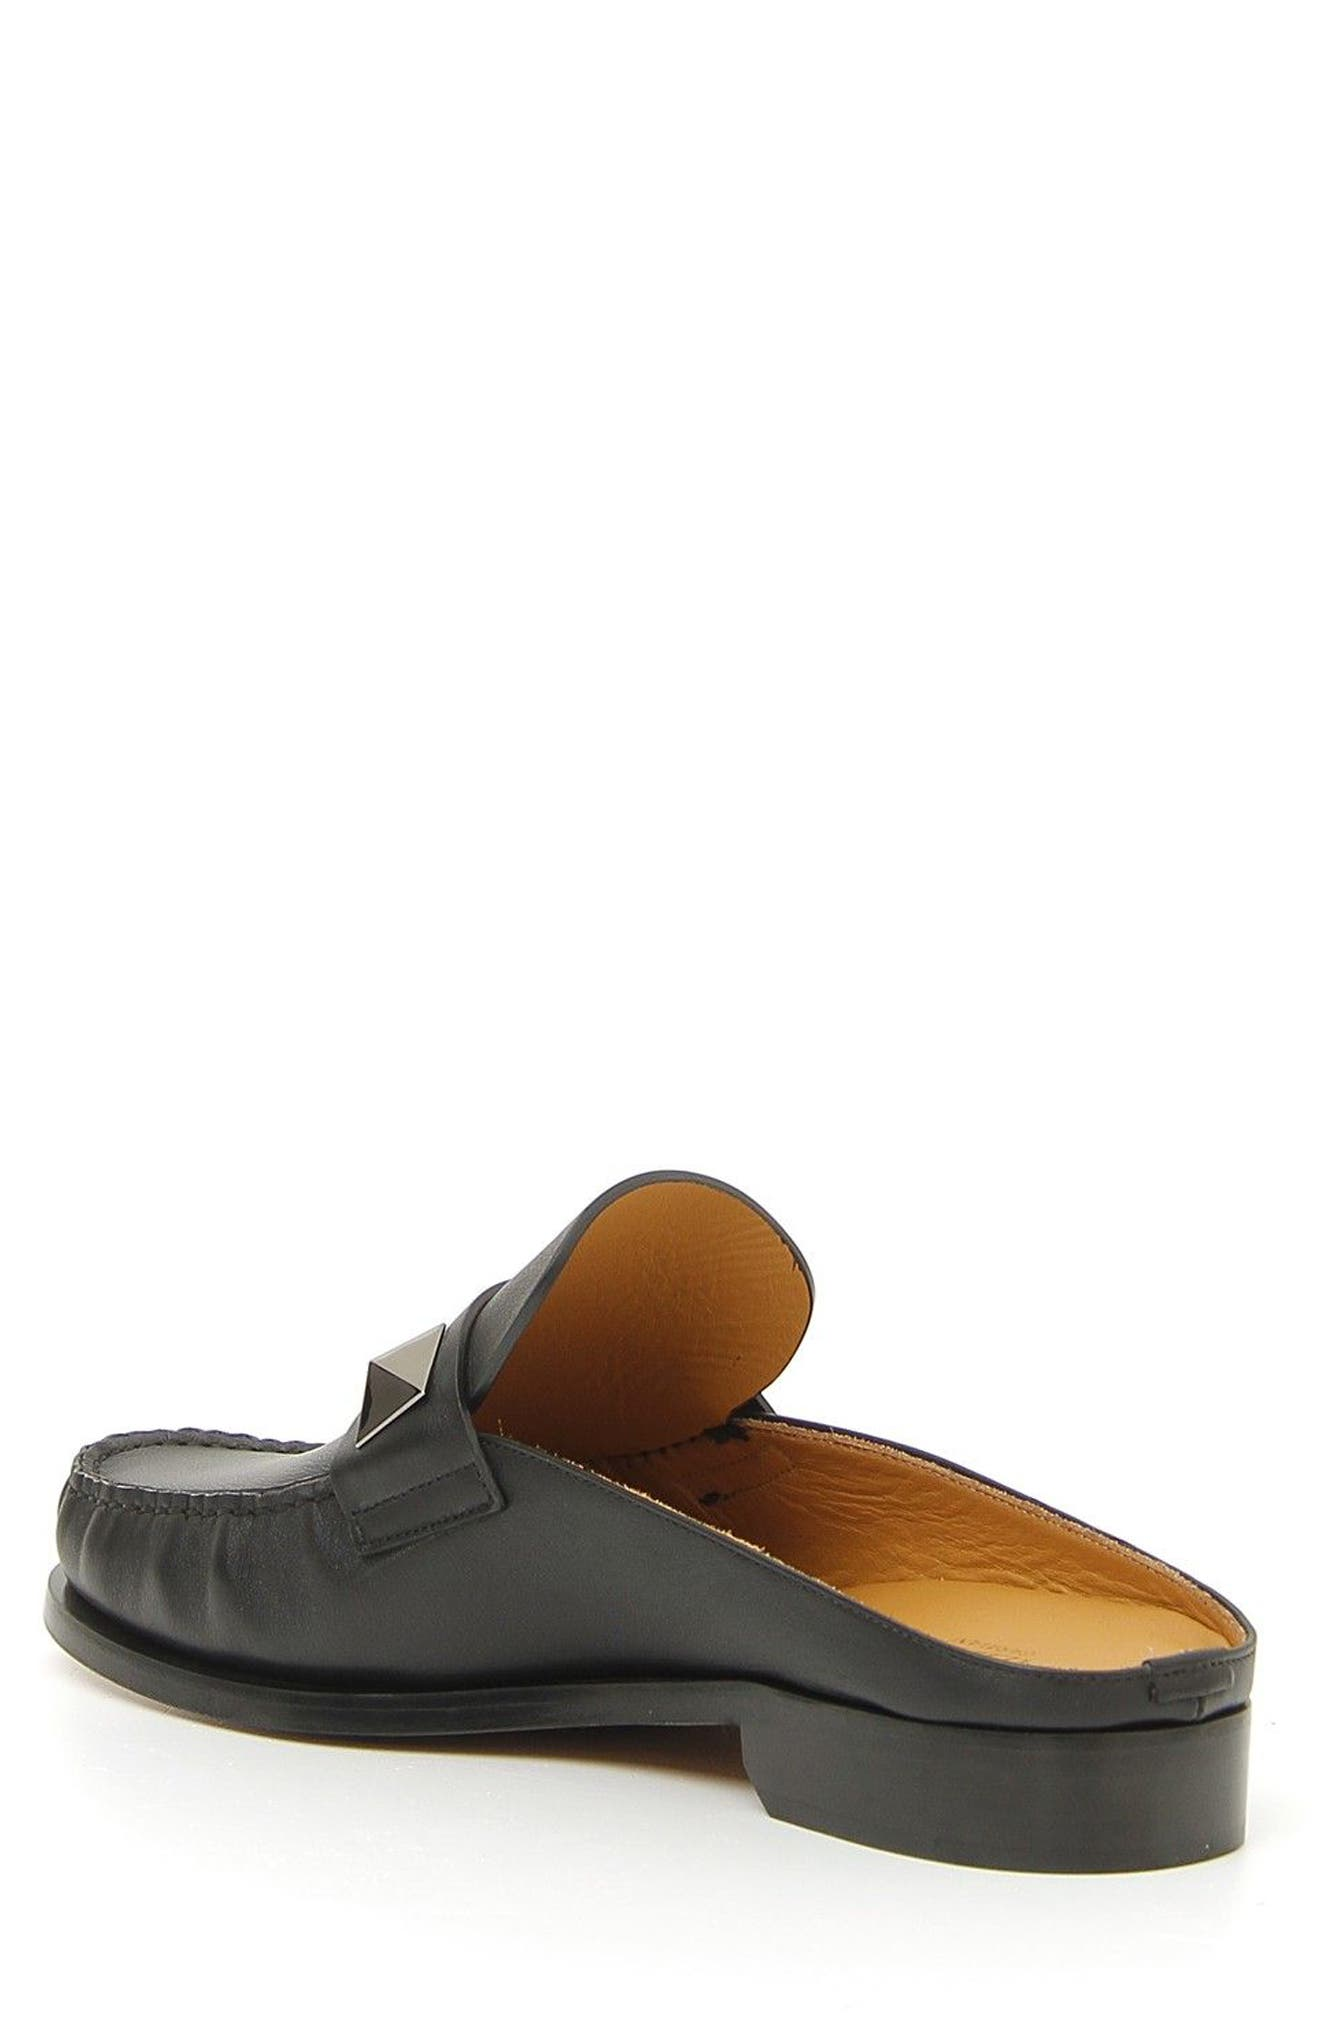 Lock Loafer Mule,                             Alternate thumbnail 2, color,                             Nero